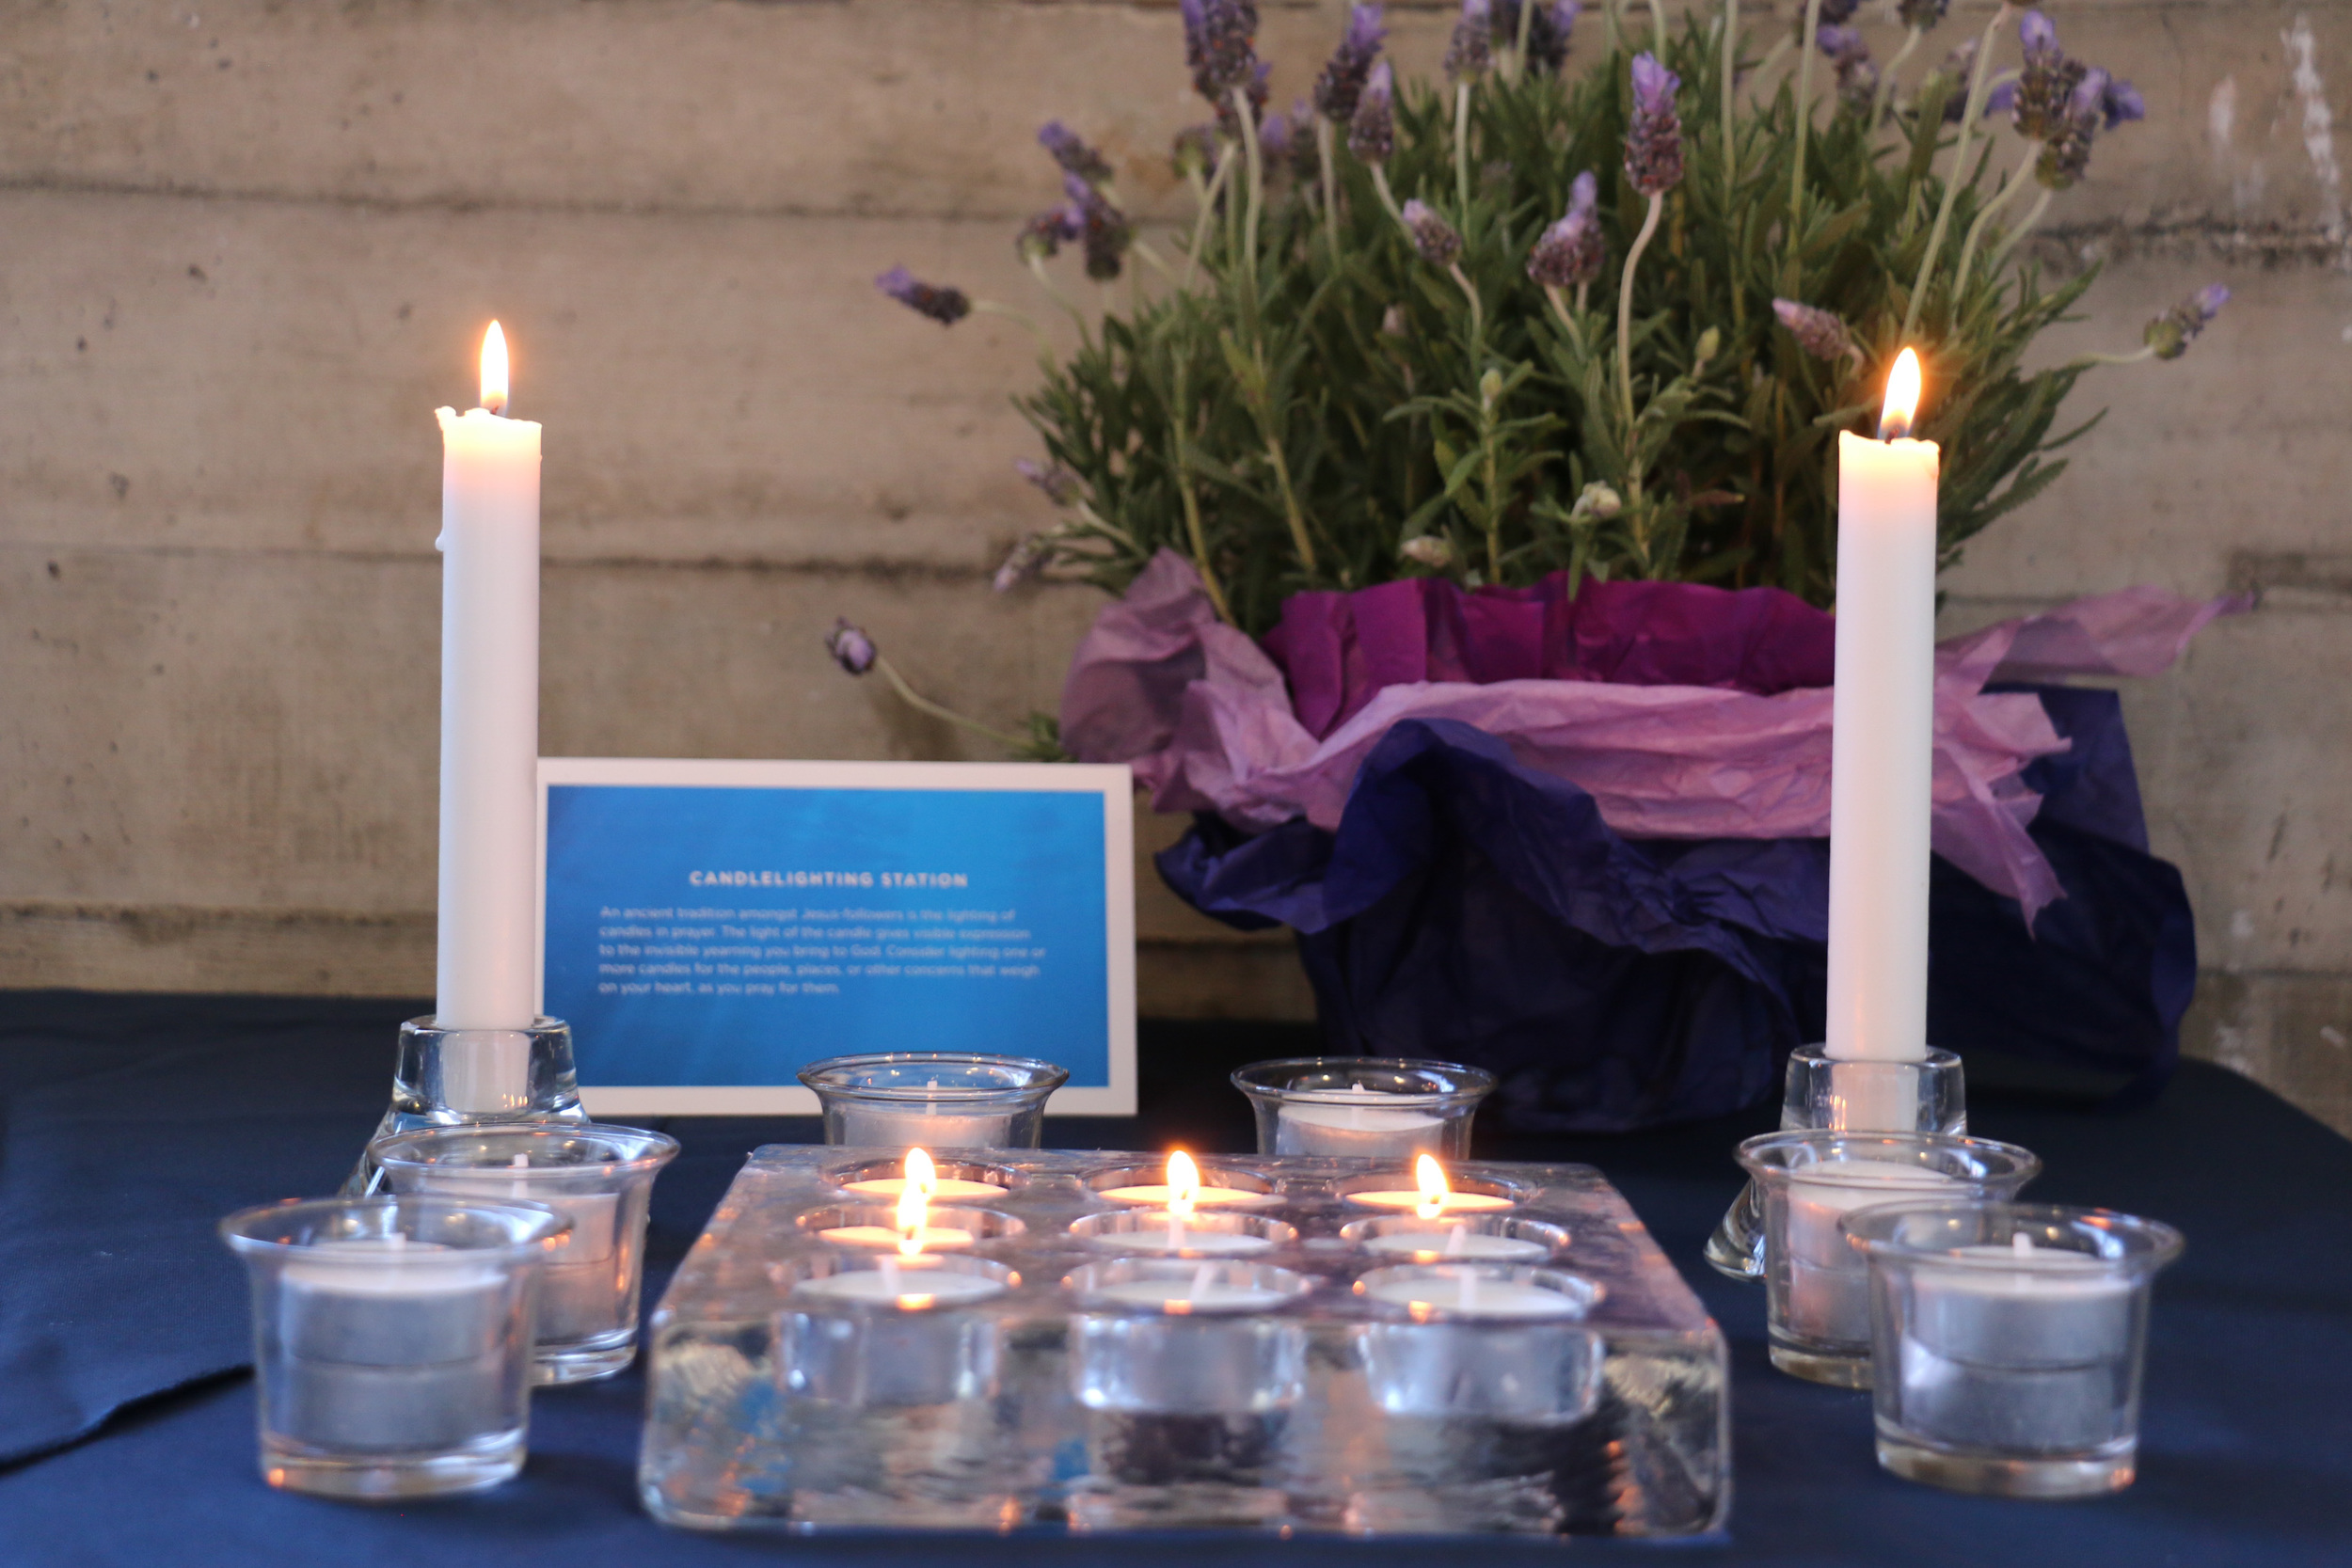 The candle lighting station, where folks are welcome to light candles as they pray for their concerns.